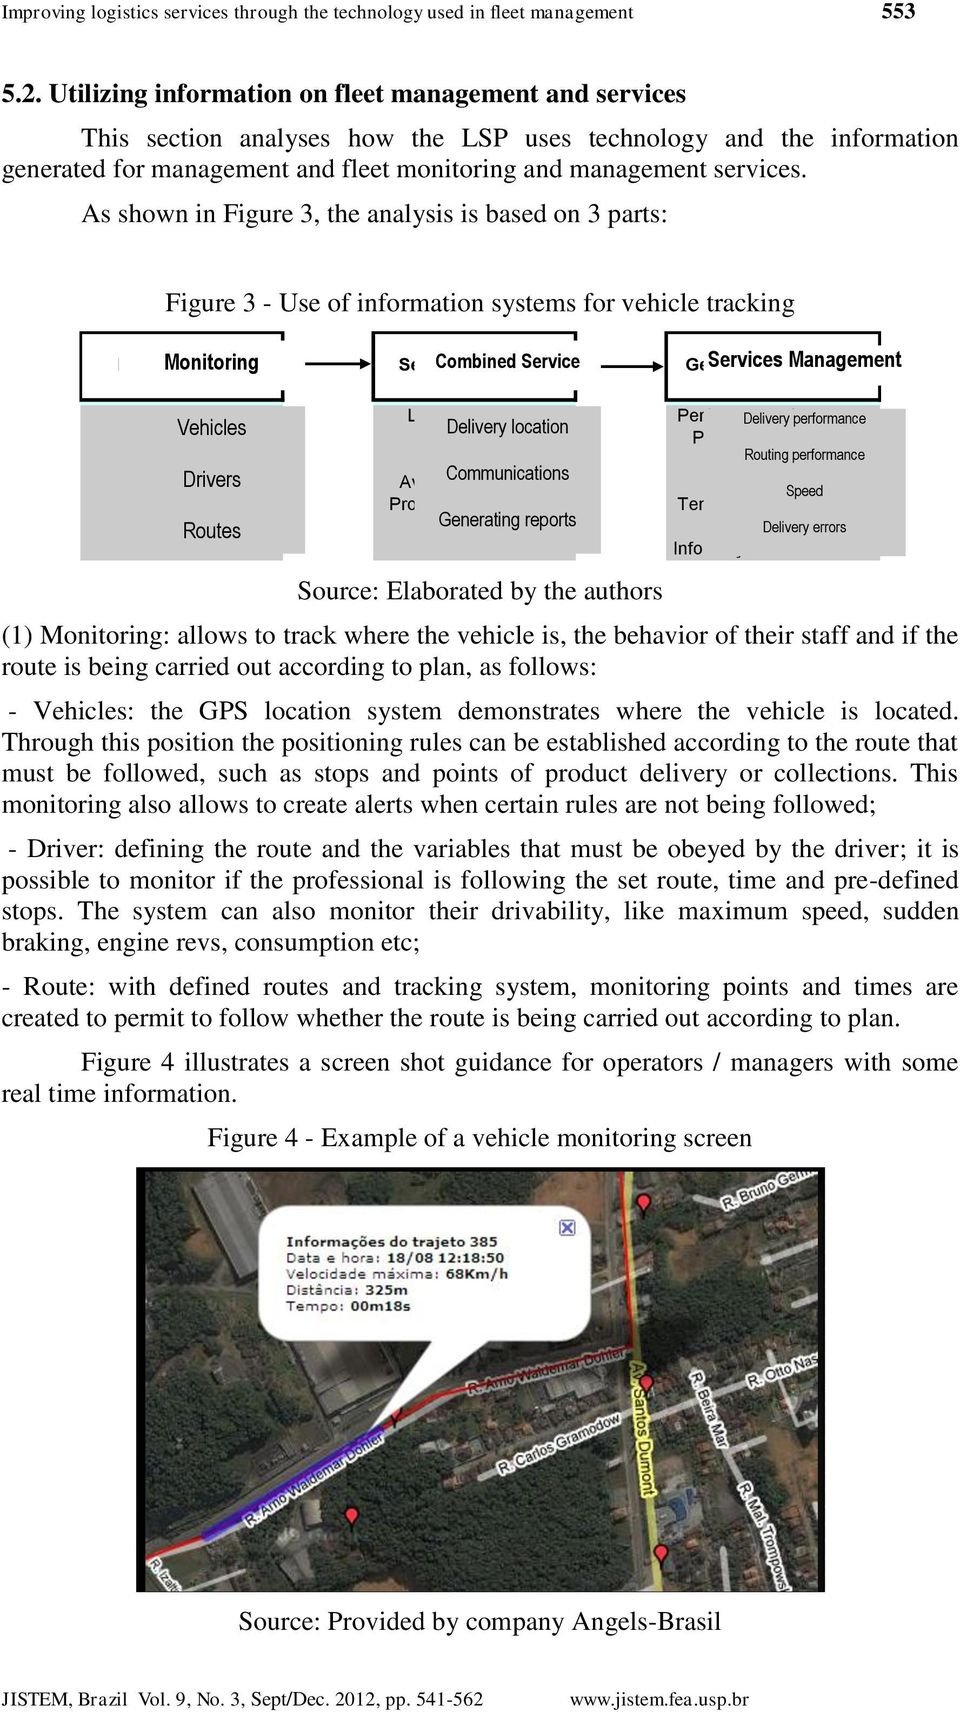 As shown in Figure 3, the analysis is based on 3 parts: Figure 3 - Use of information systems for vehicle tracking Monitoring Combined Service Services Management Monitoramento Serviço Agregado